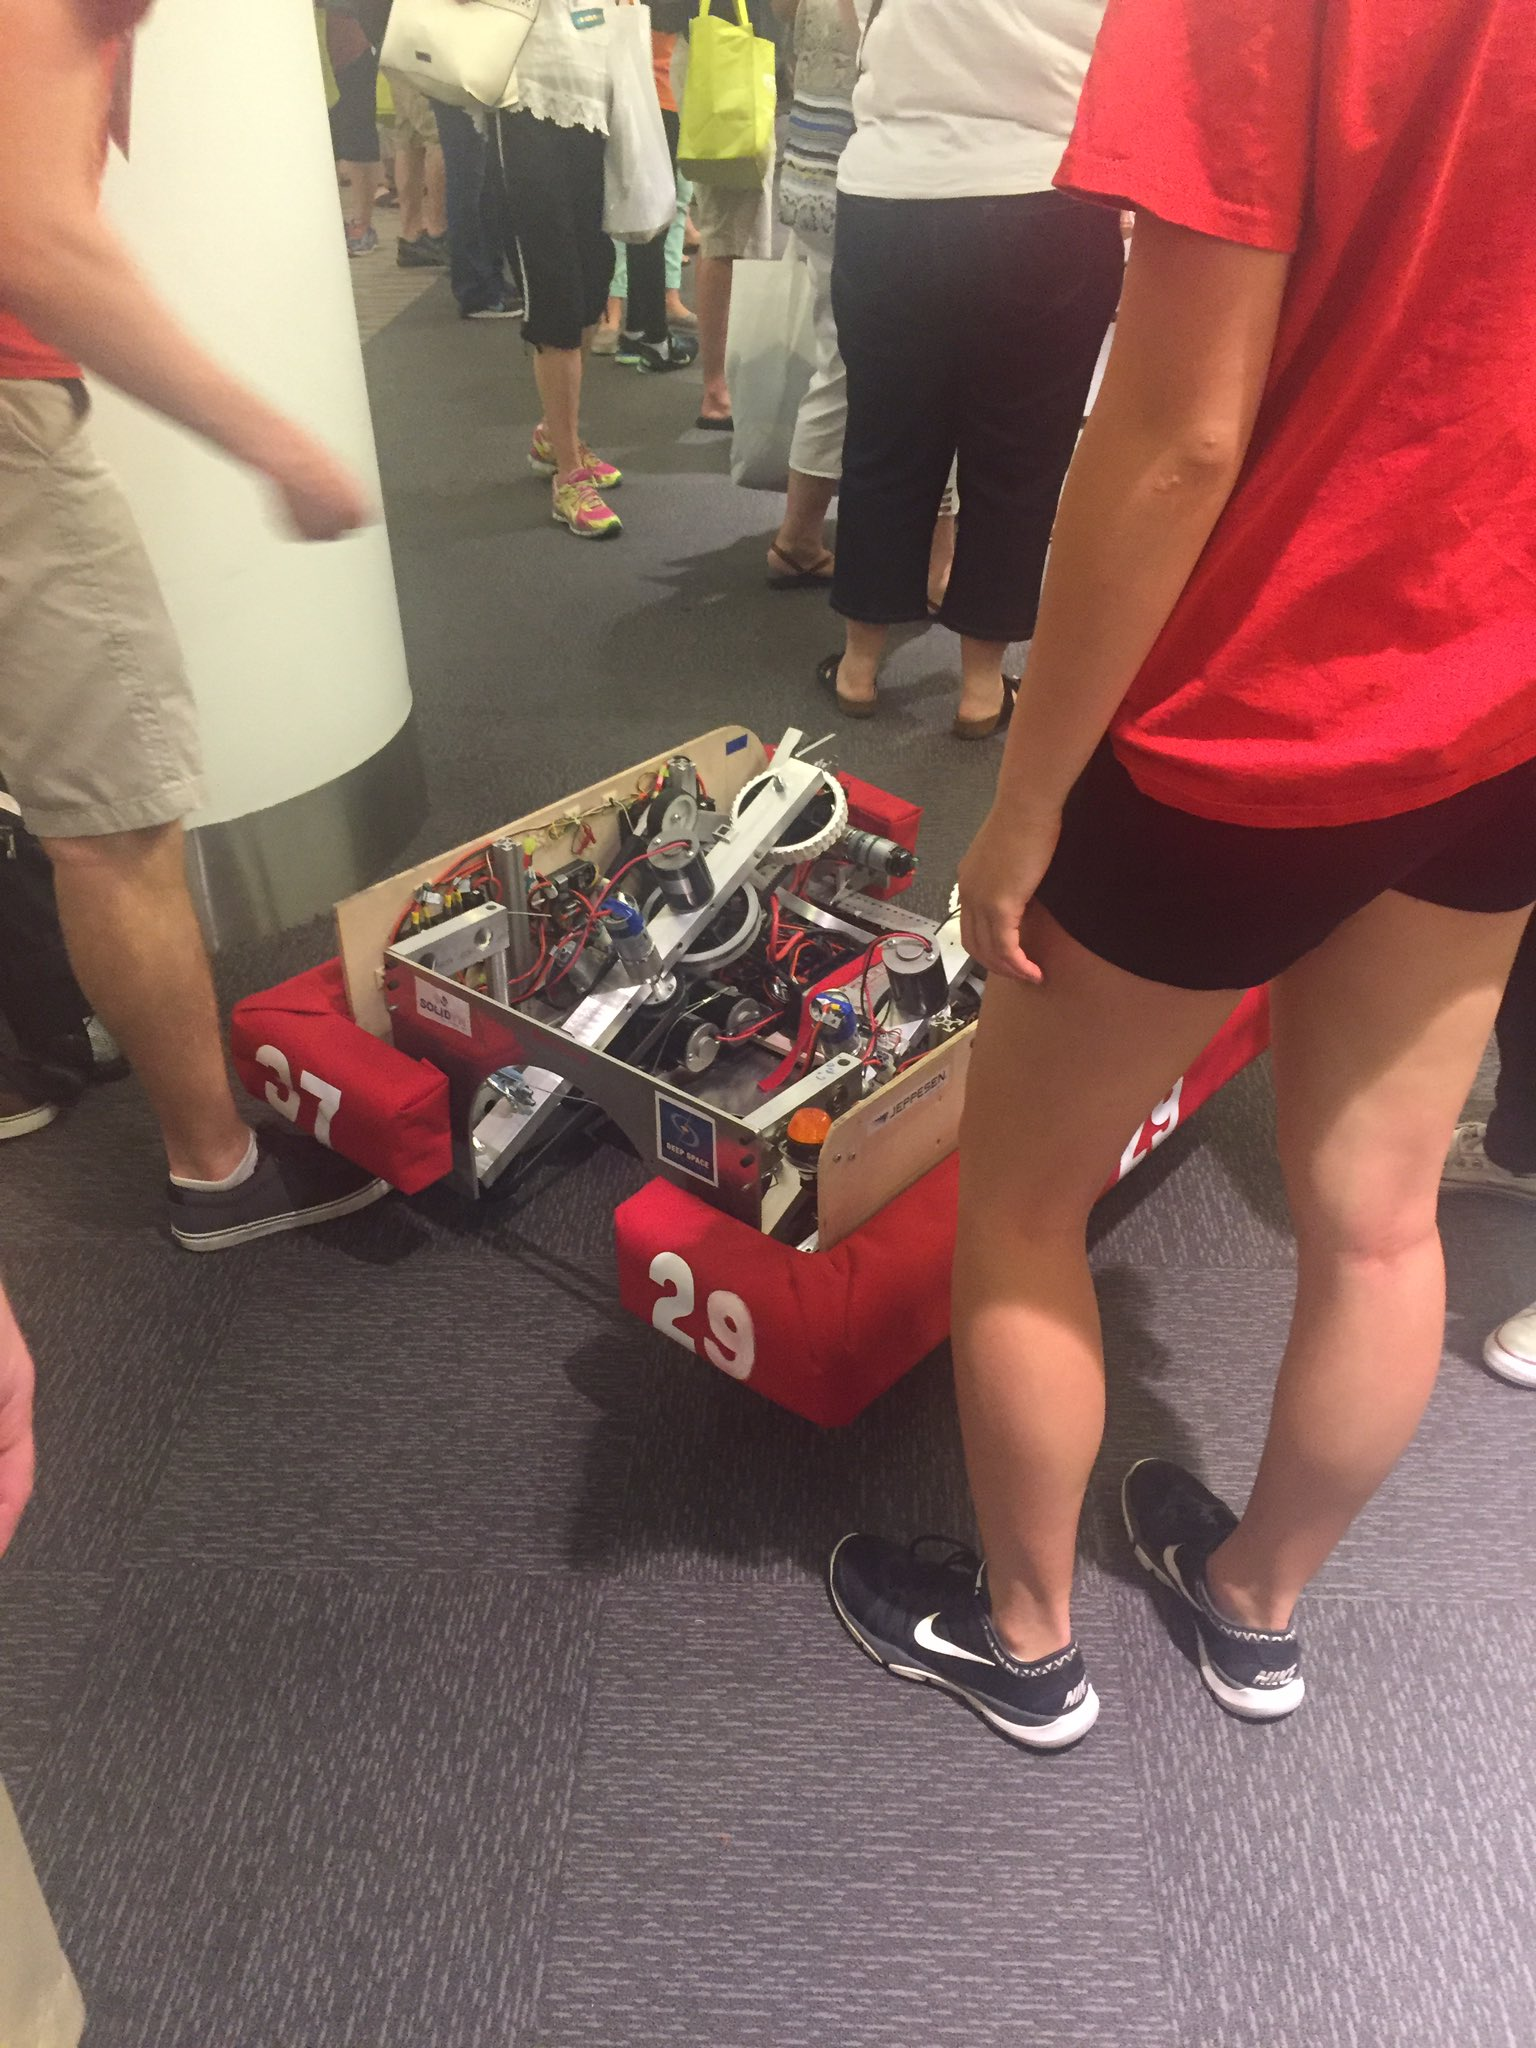 CS playground at #ISTE2016 #fcpsiste learning to build some robots!! https://t.co/6tB8hVZiuz